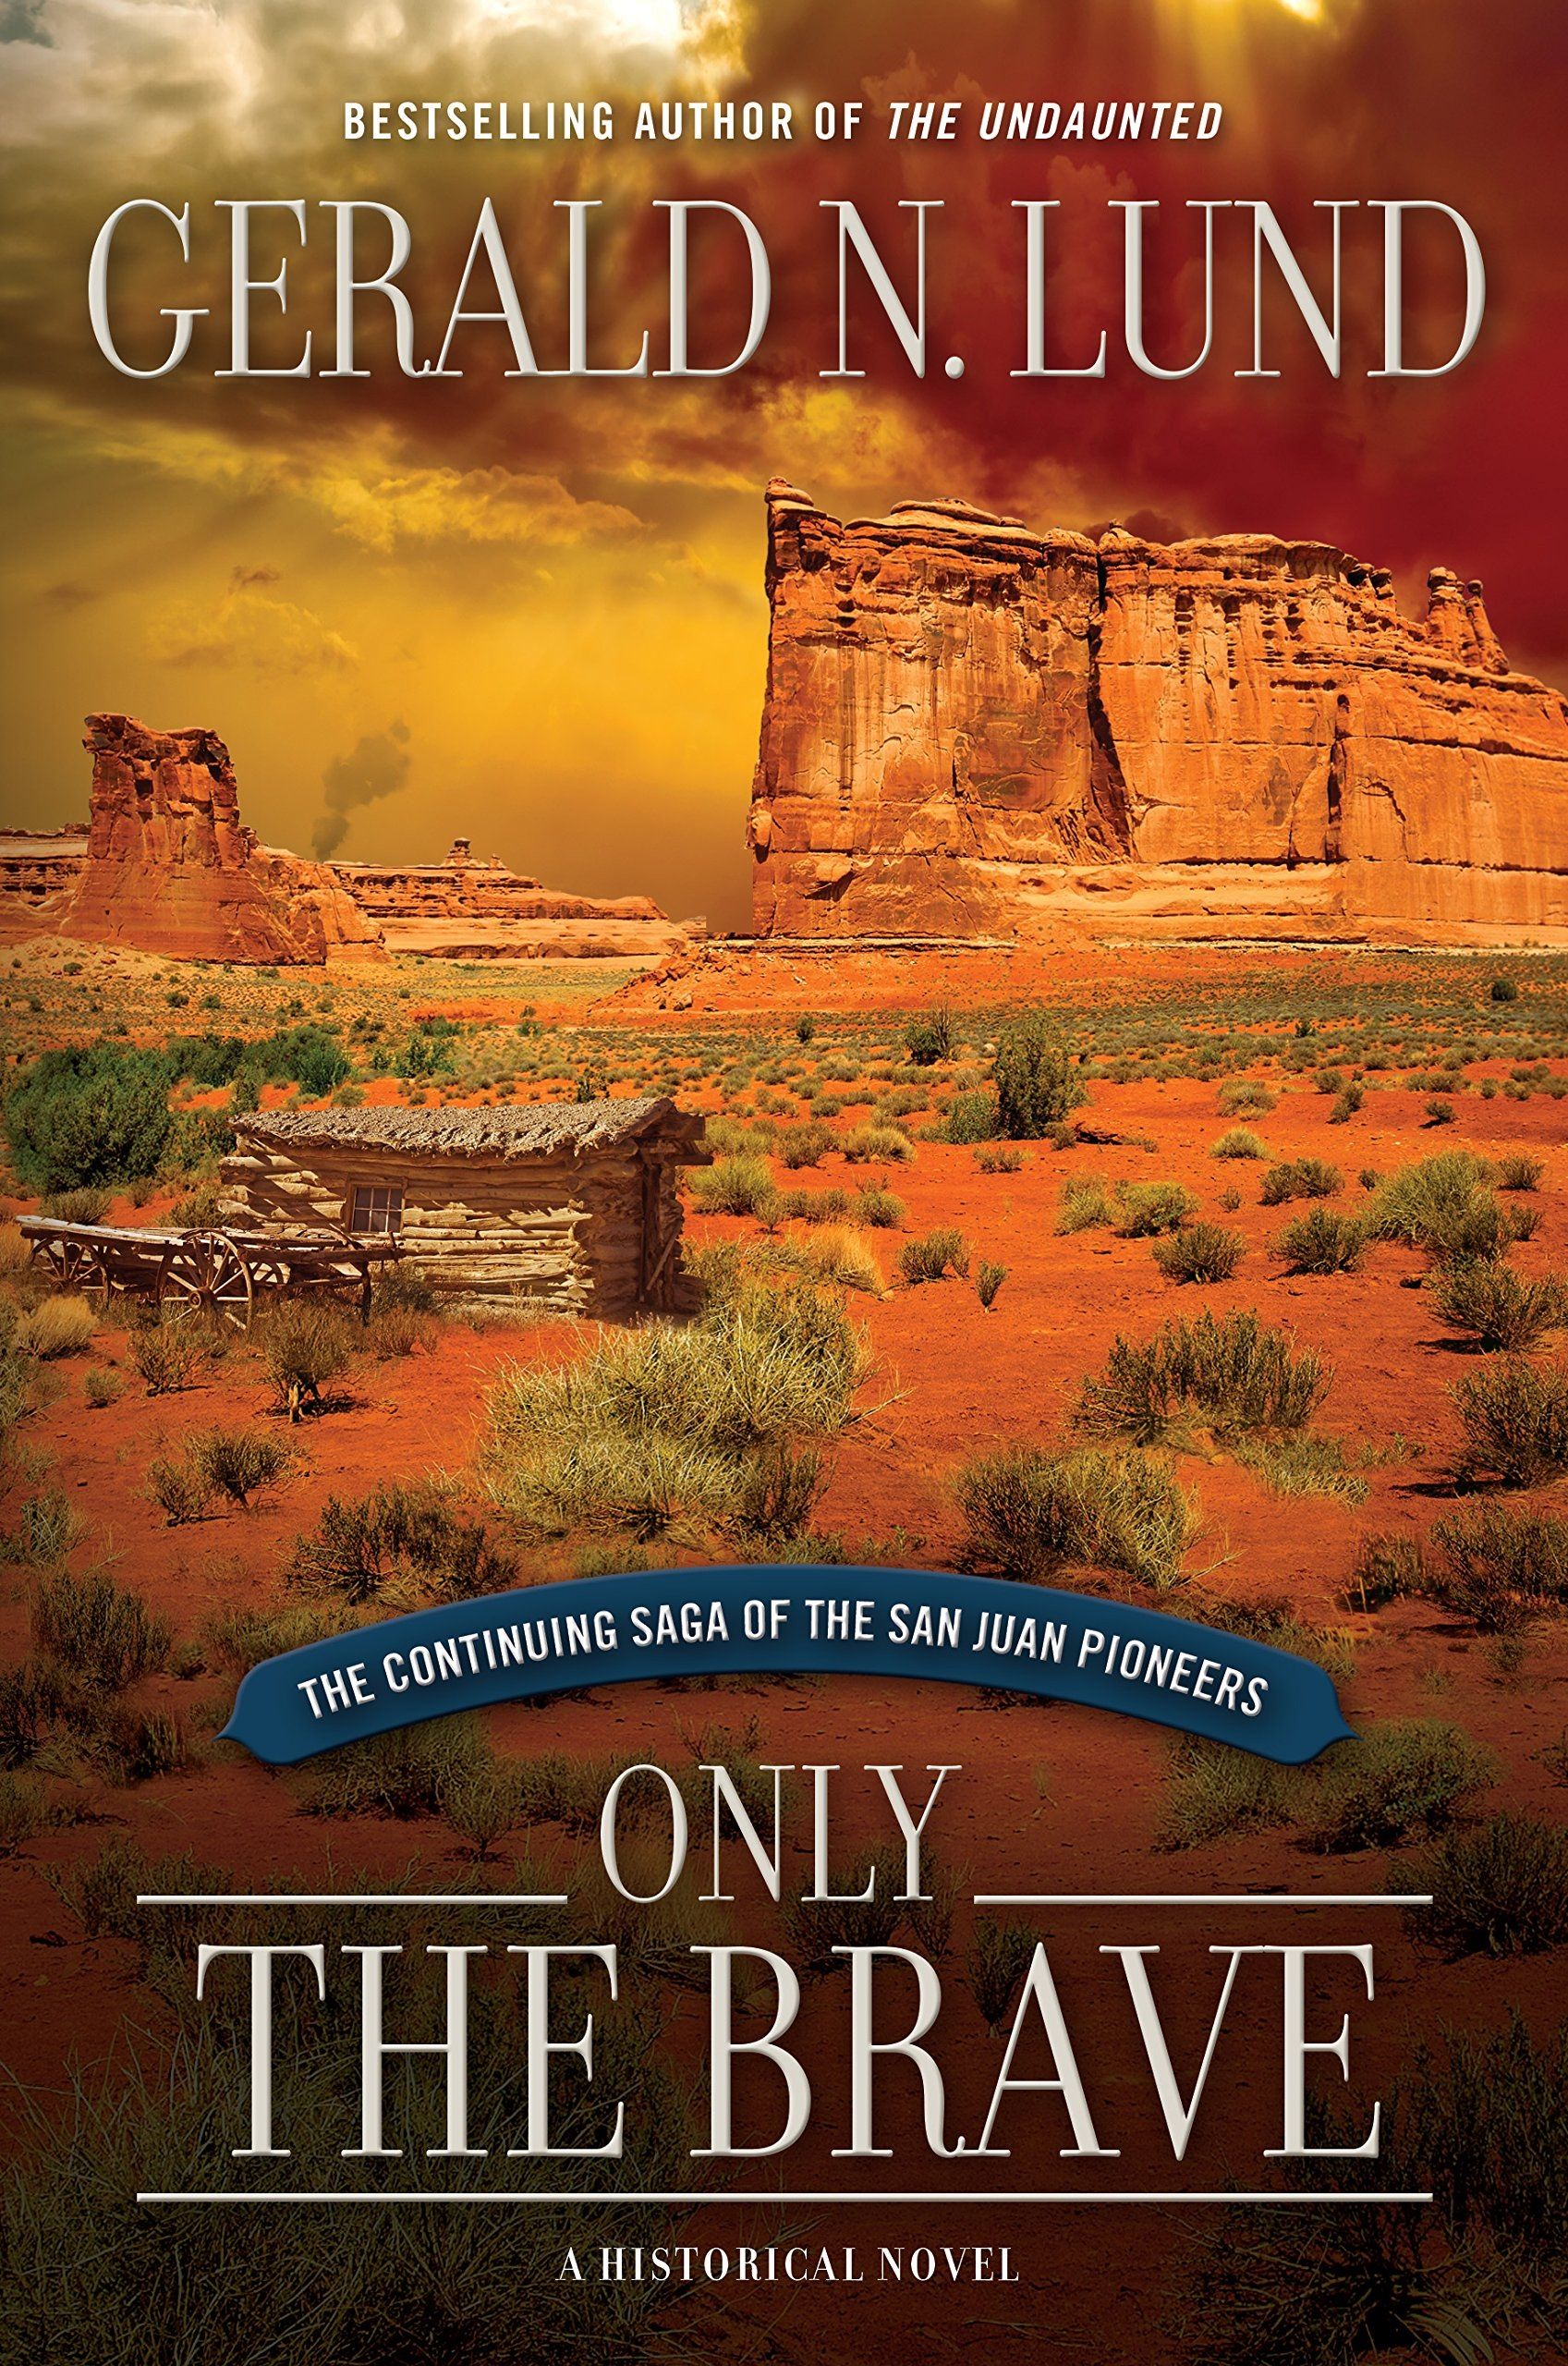 Image for Only the Brave  The Continuing Saga of the San Juan Pioneers